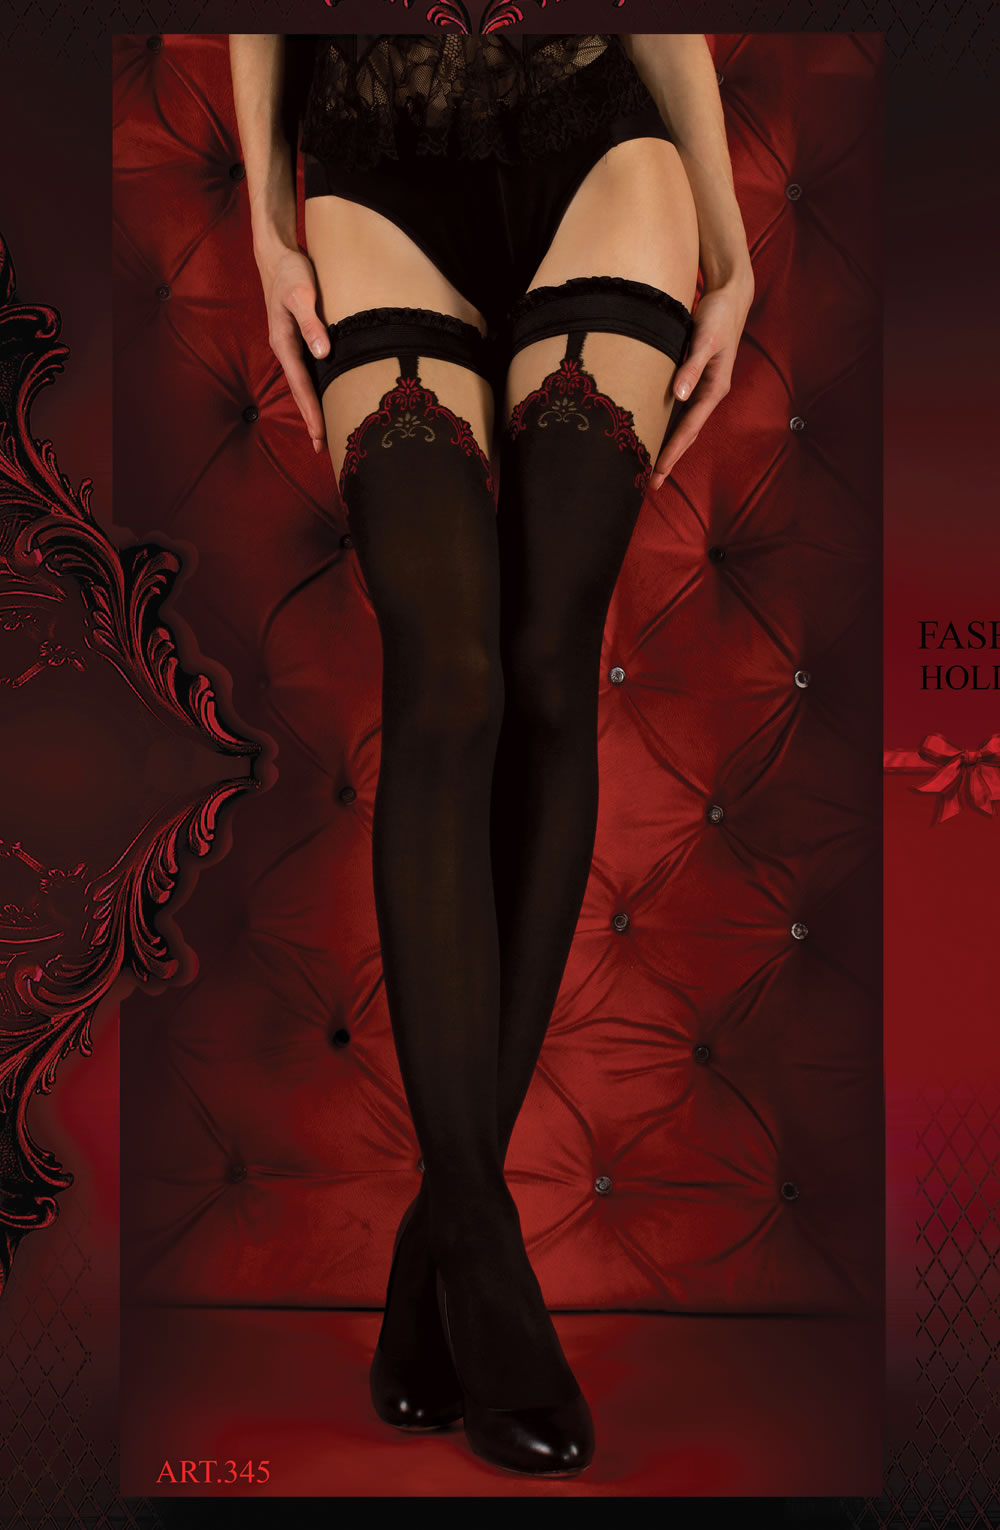 BALLERINA 345 Hold Ups NERO/RED  Ballerina, Hold Ups, Hosiery, NEWLY-IMPORTED, Our TOP Valentine's Gifts!, Valentine, Valentines - So Luxe Lingerie